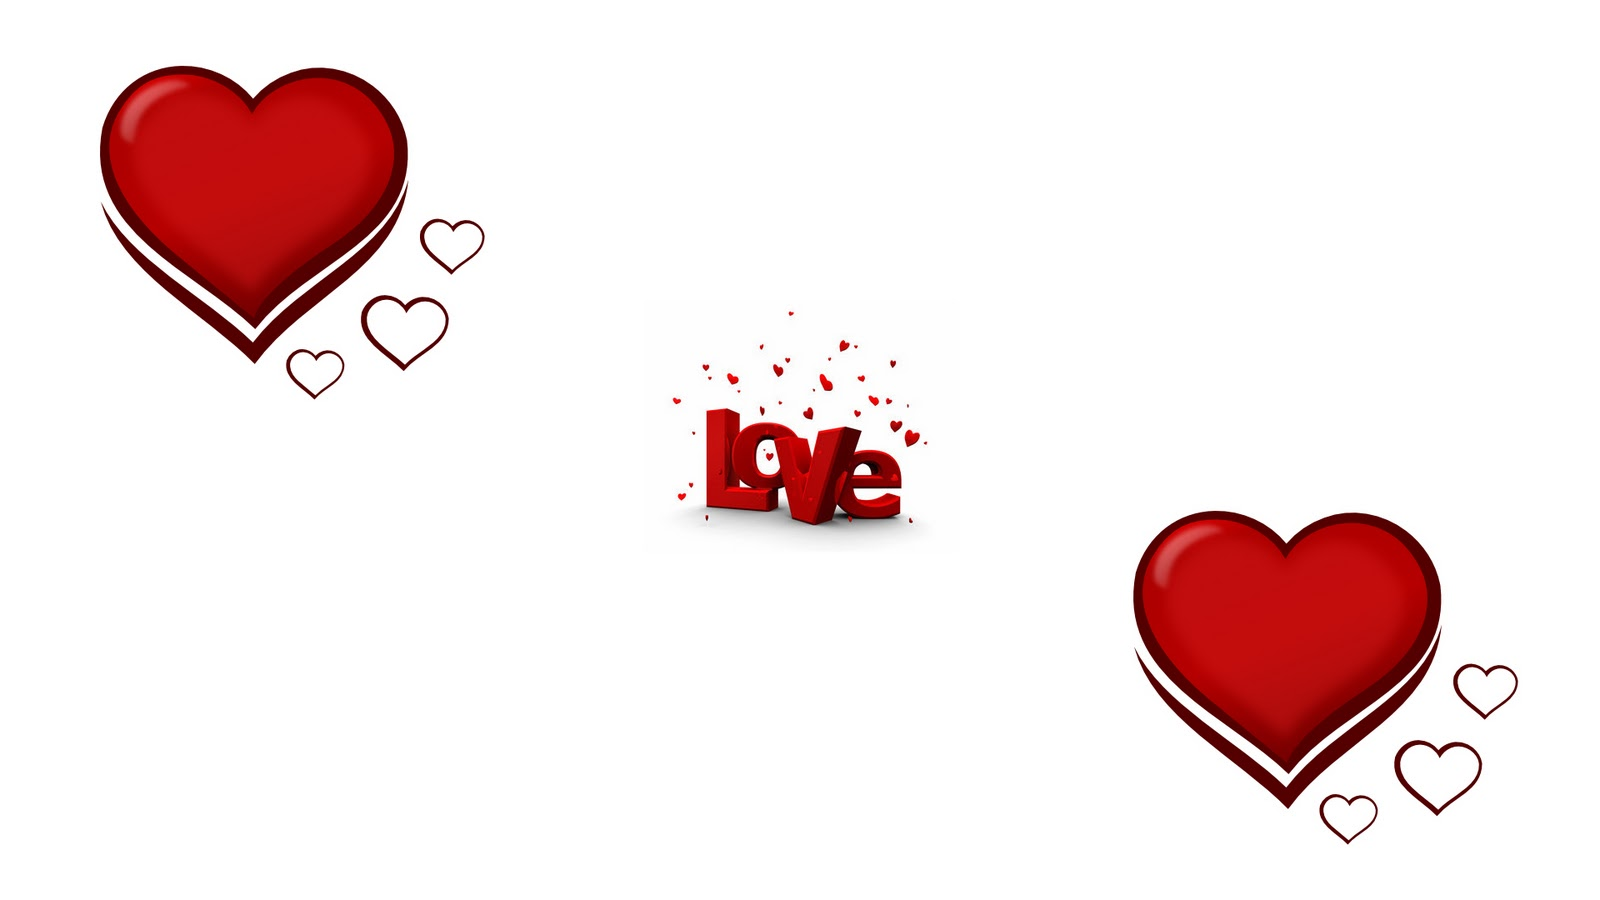 Love Wallpaper Sms : Life for SMS: Love HD Wallpapers 7